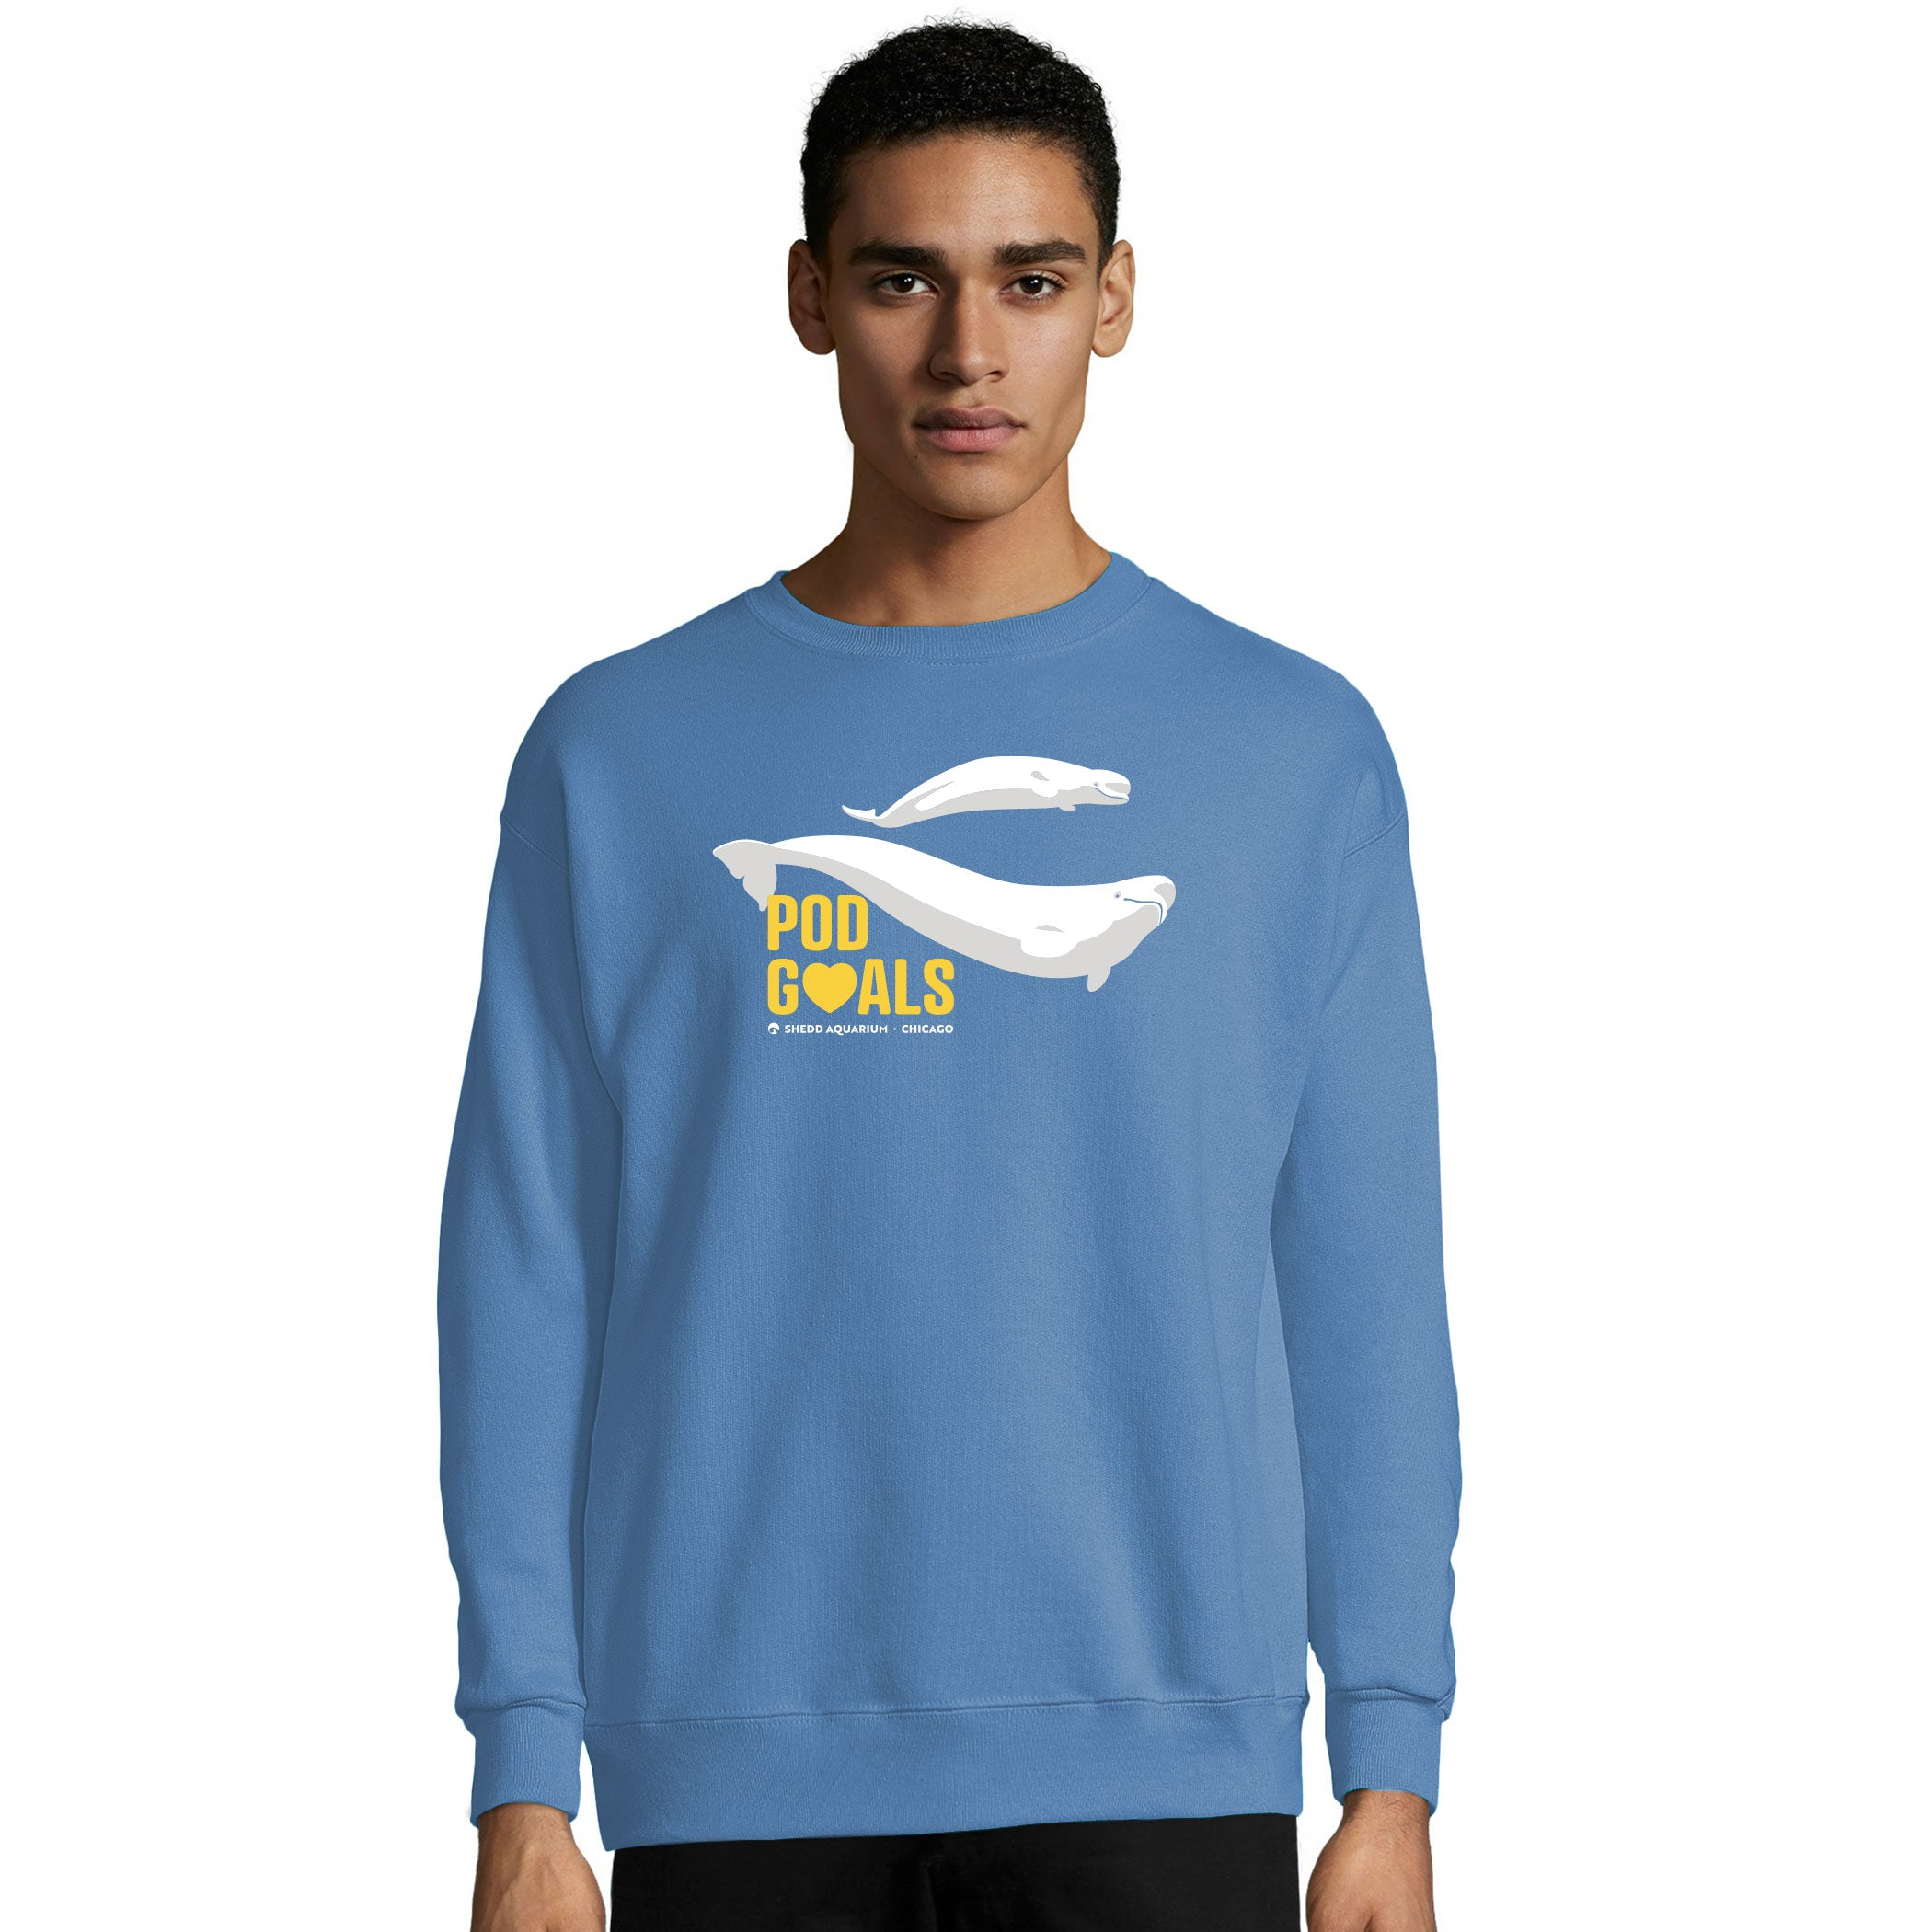 Pod Goals Beluga Adult Sweater